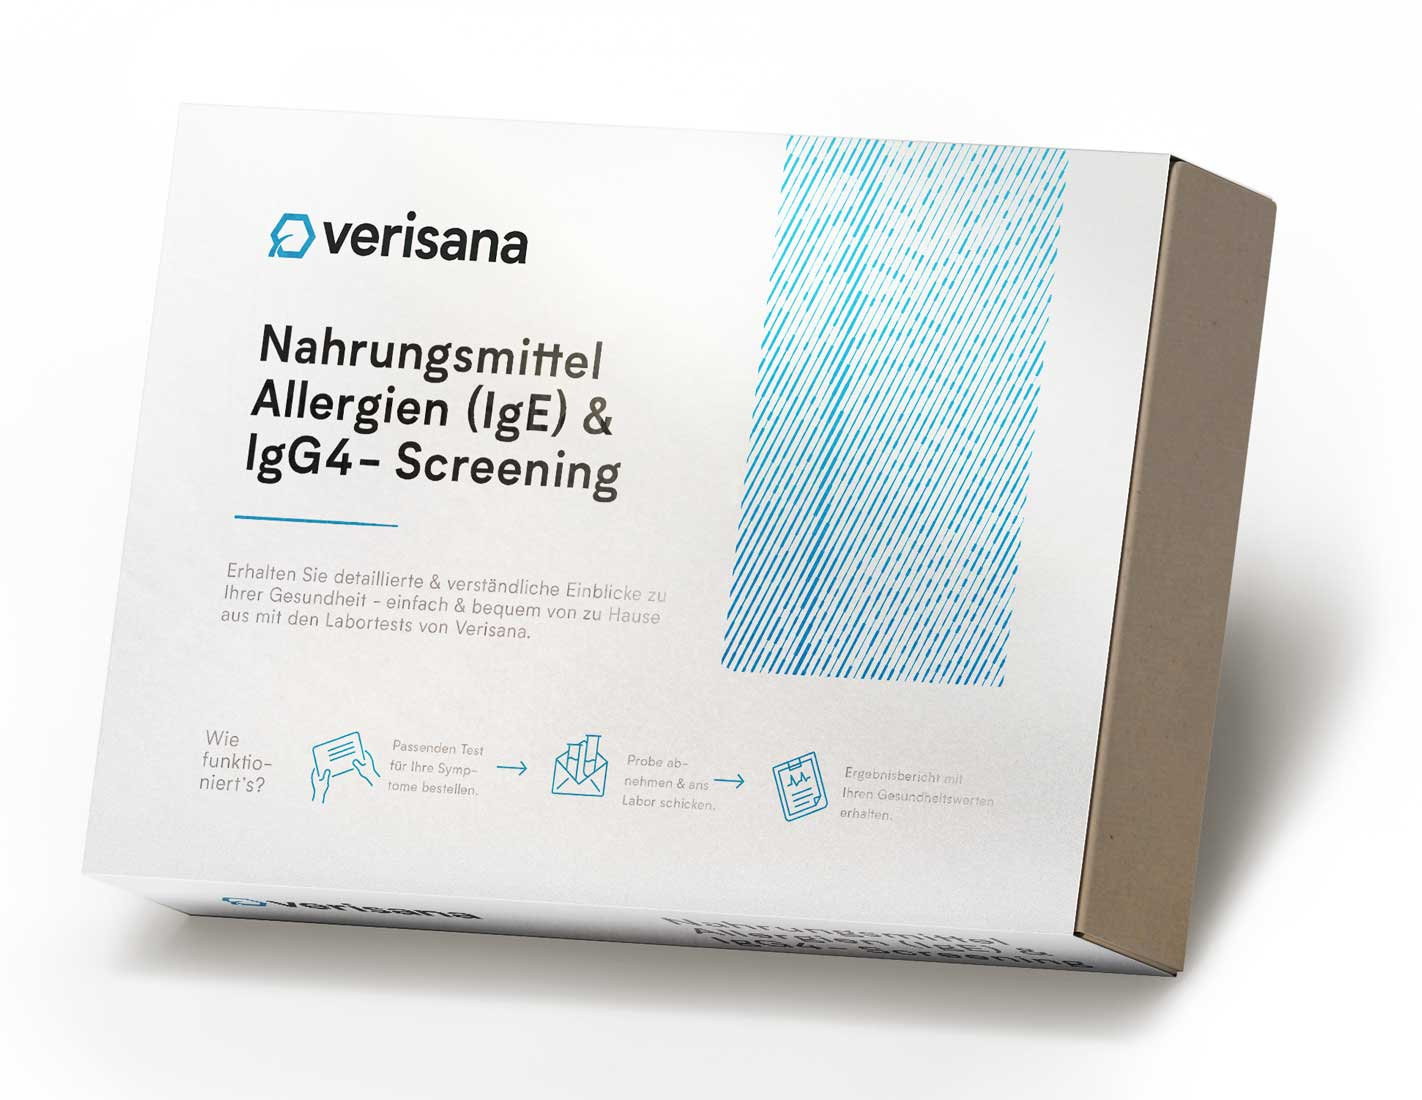 Nahrungsmittel-Allergien-(IgE)-&-IgG4-Screening-Test-auf-43-Parameter